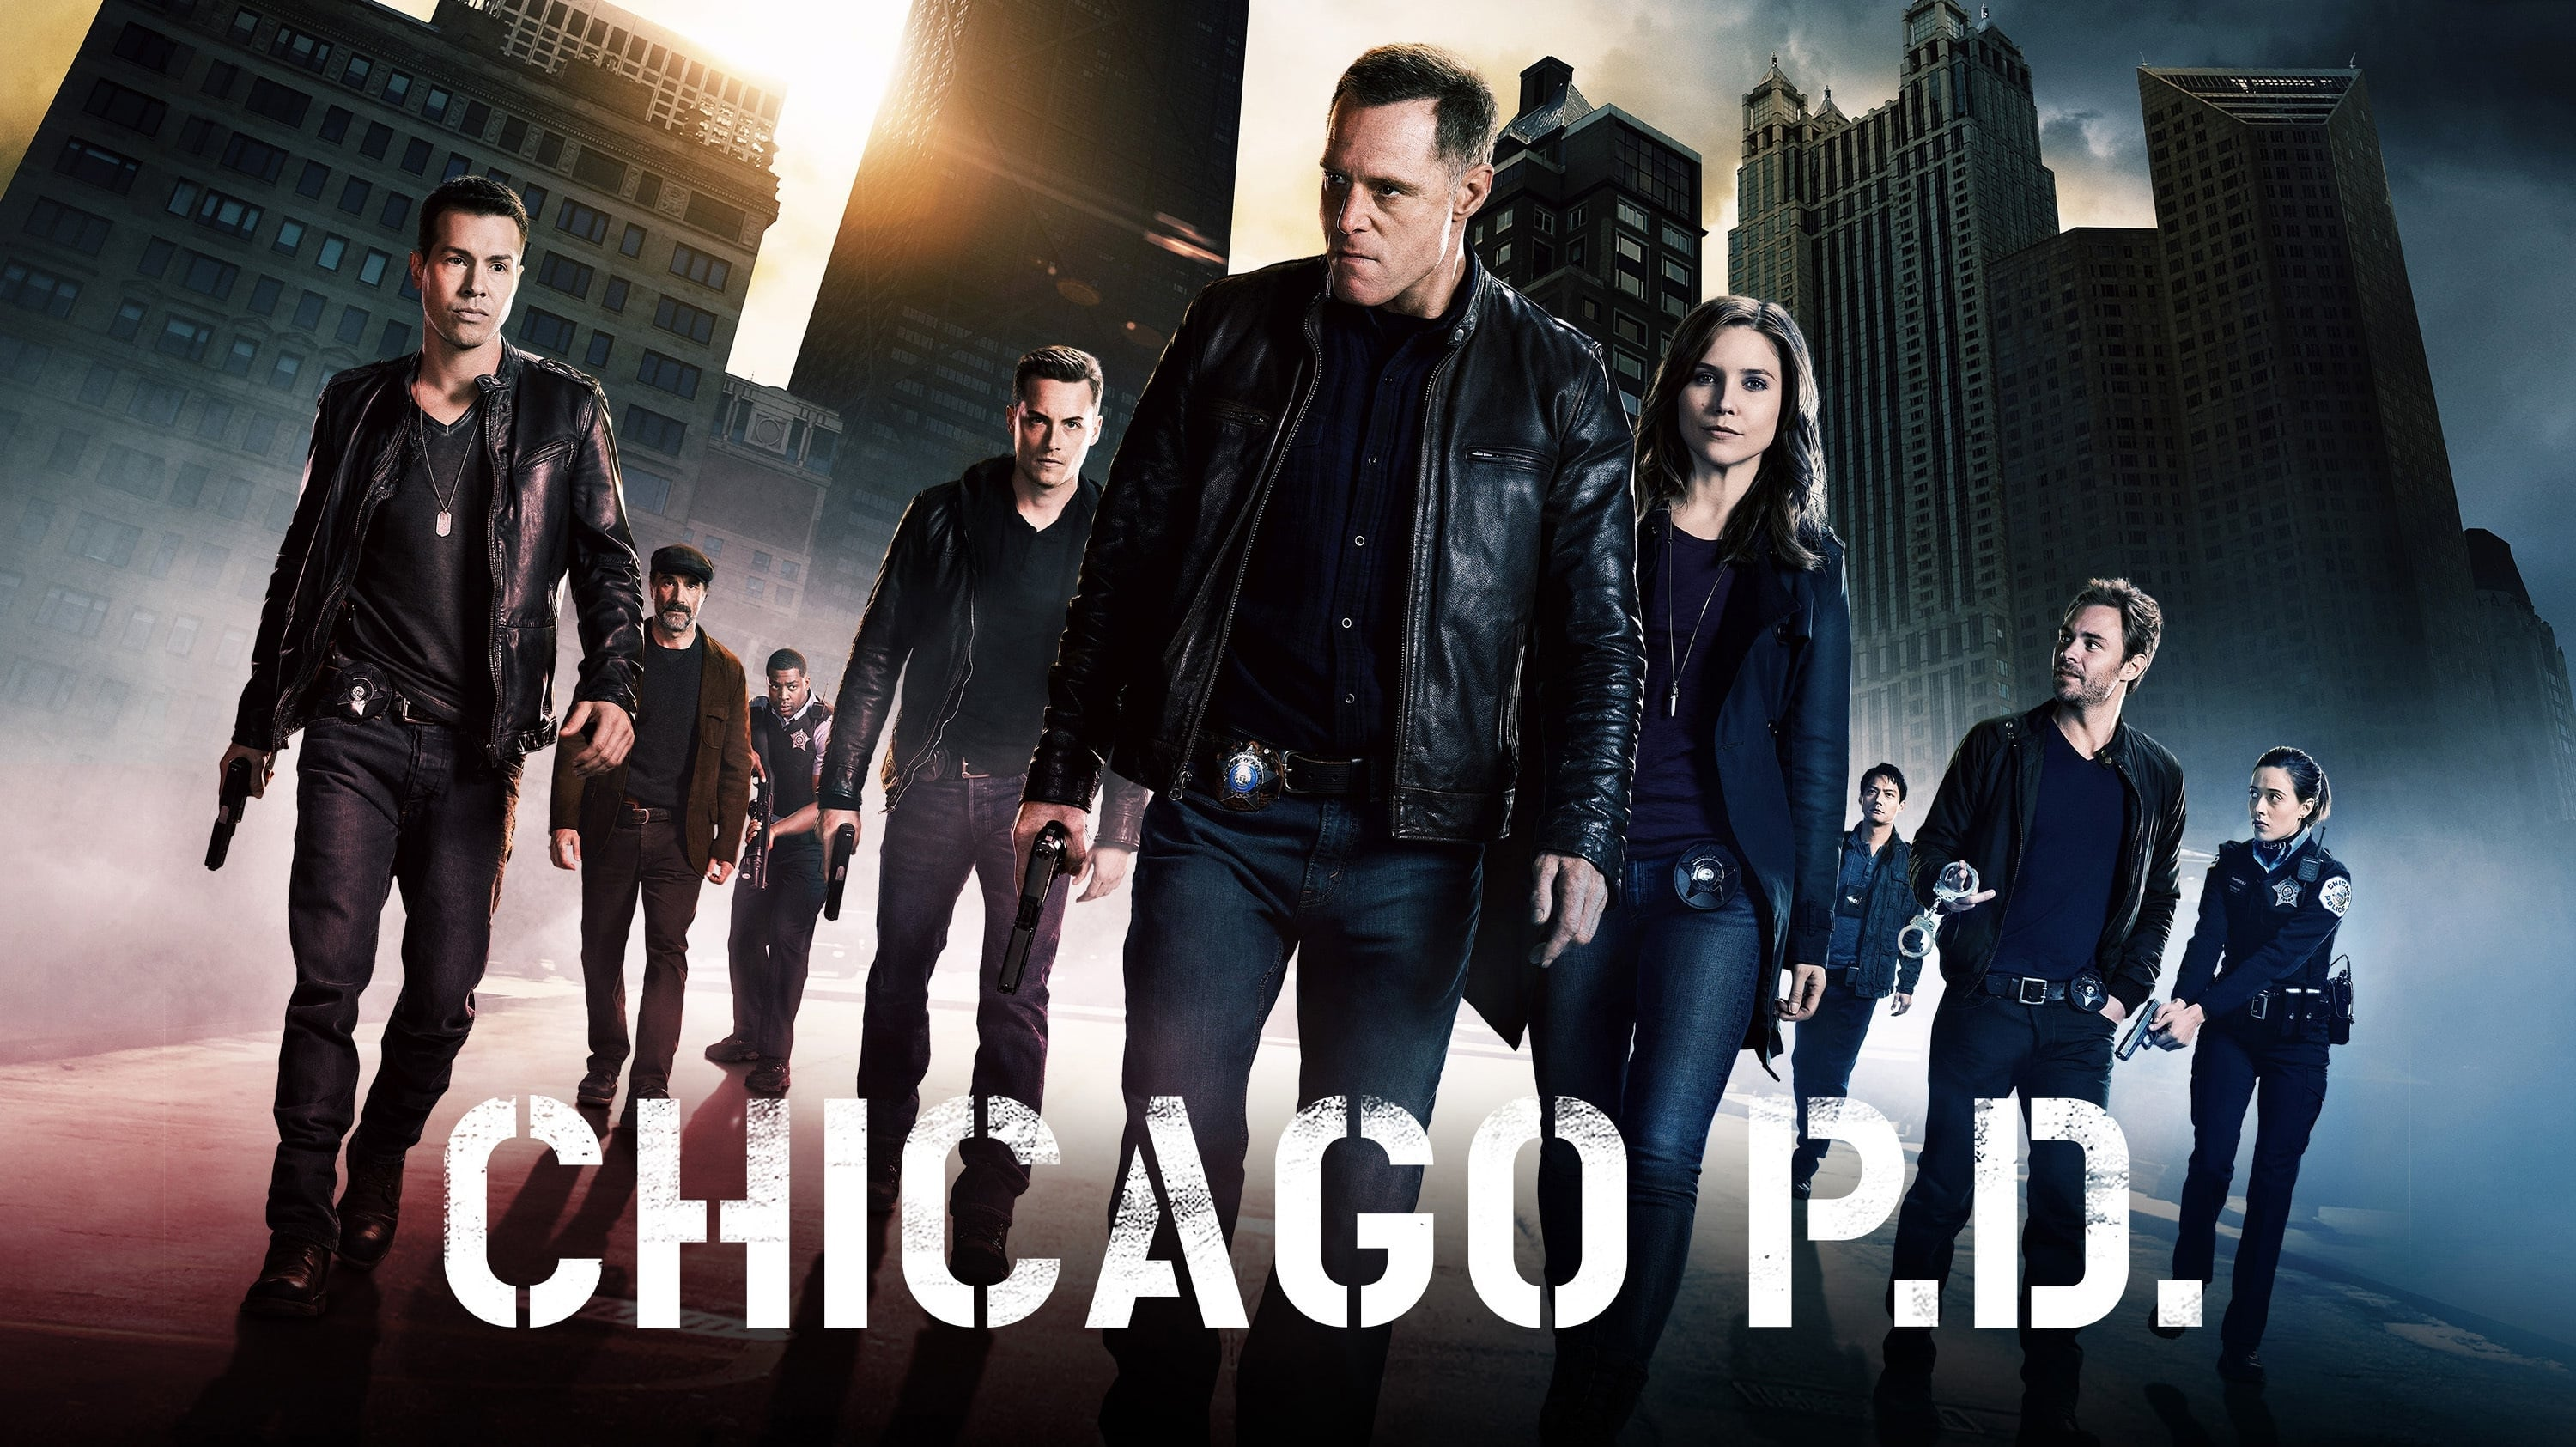 Chicago P.D. Trailer